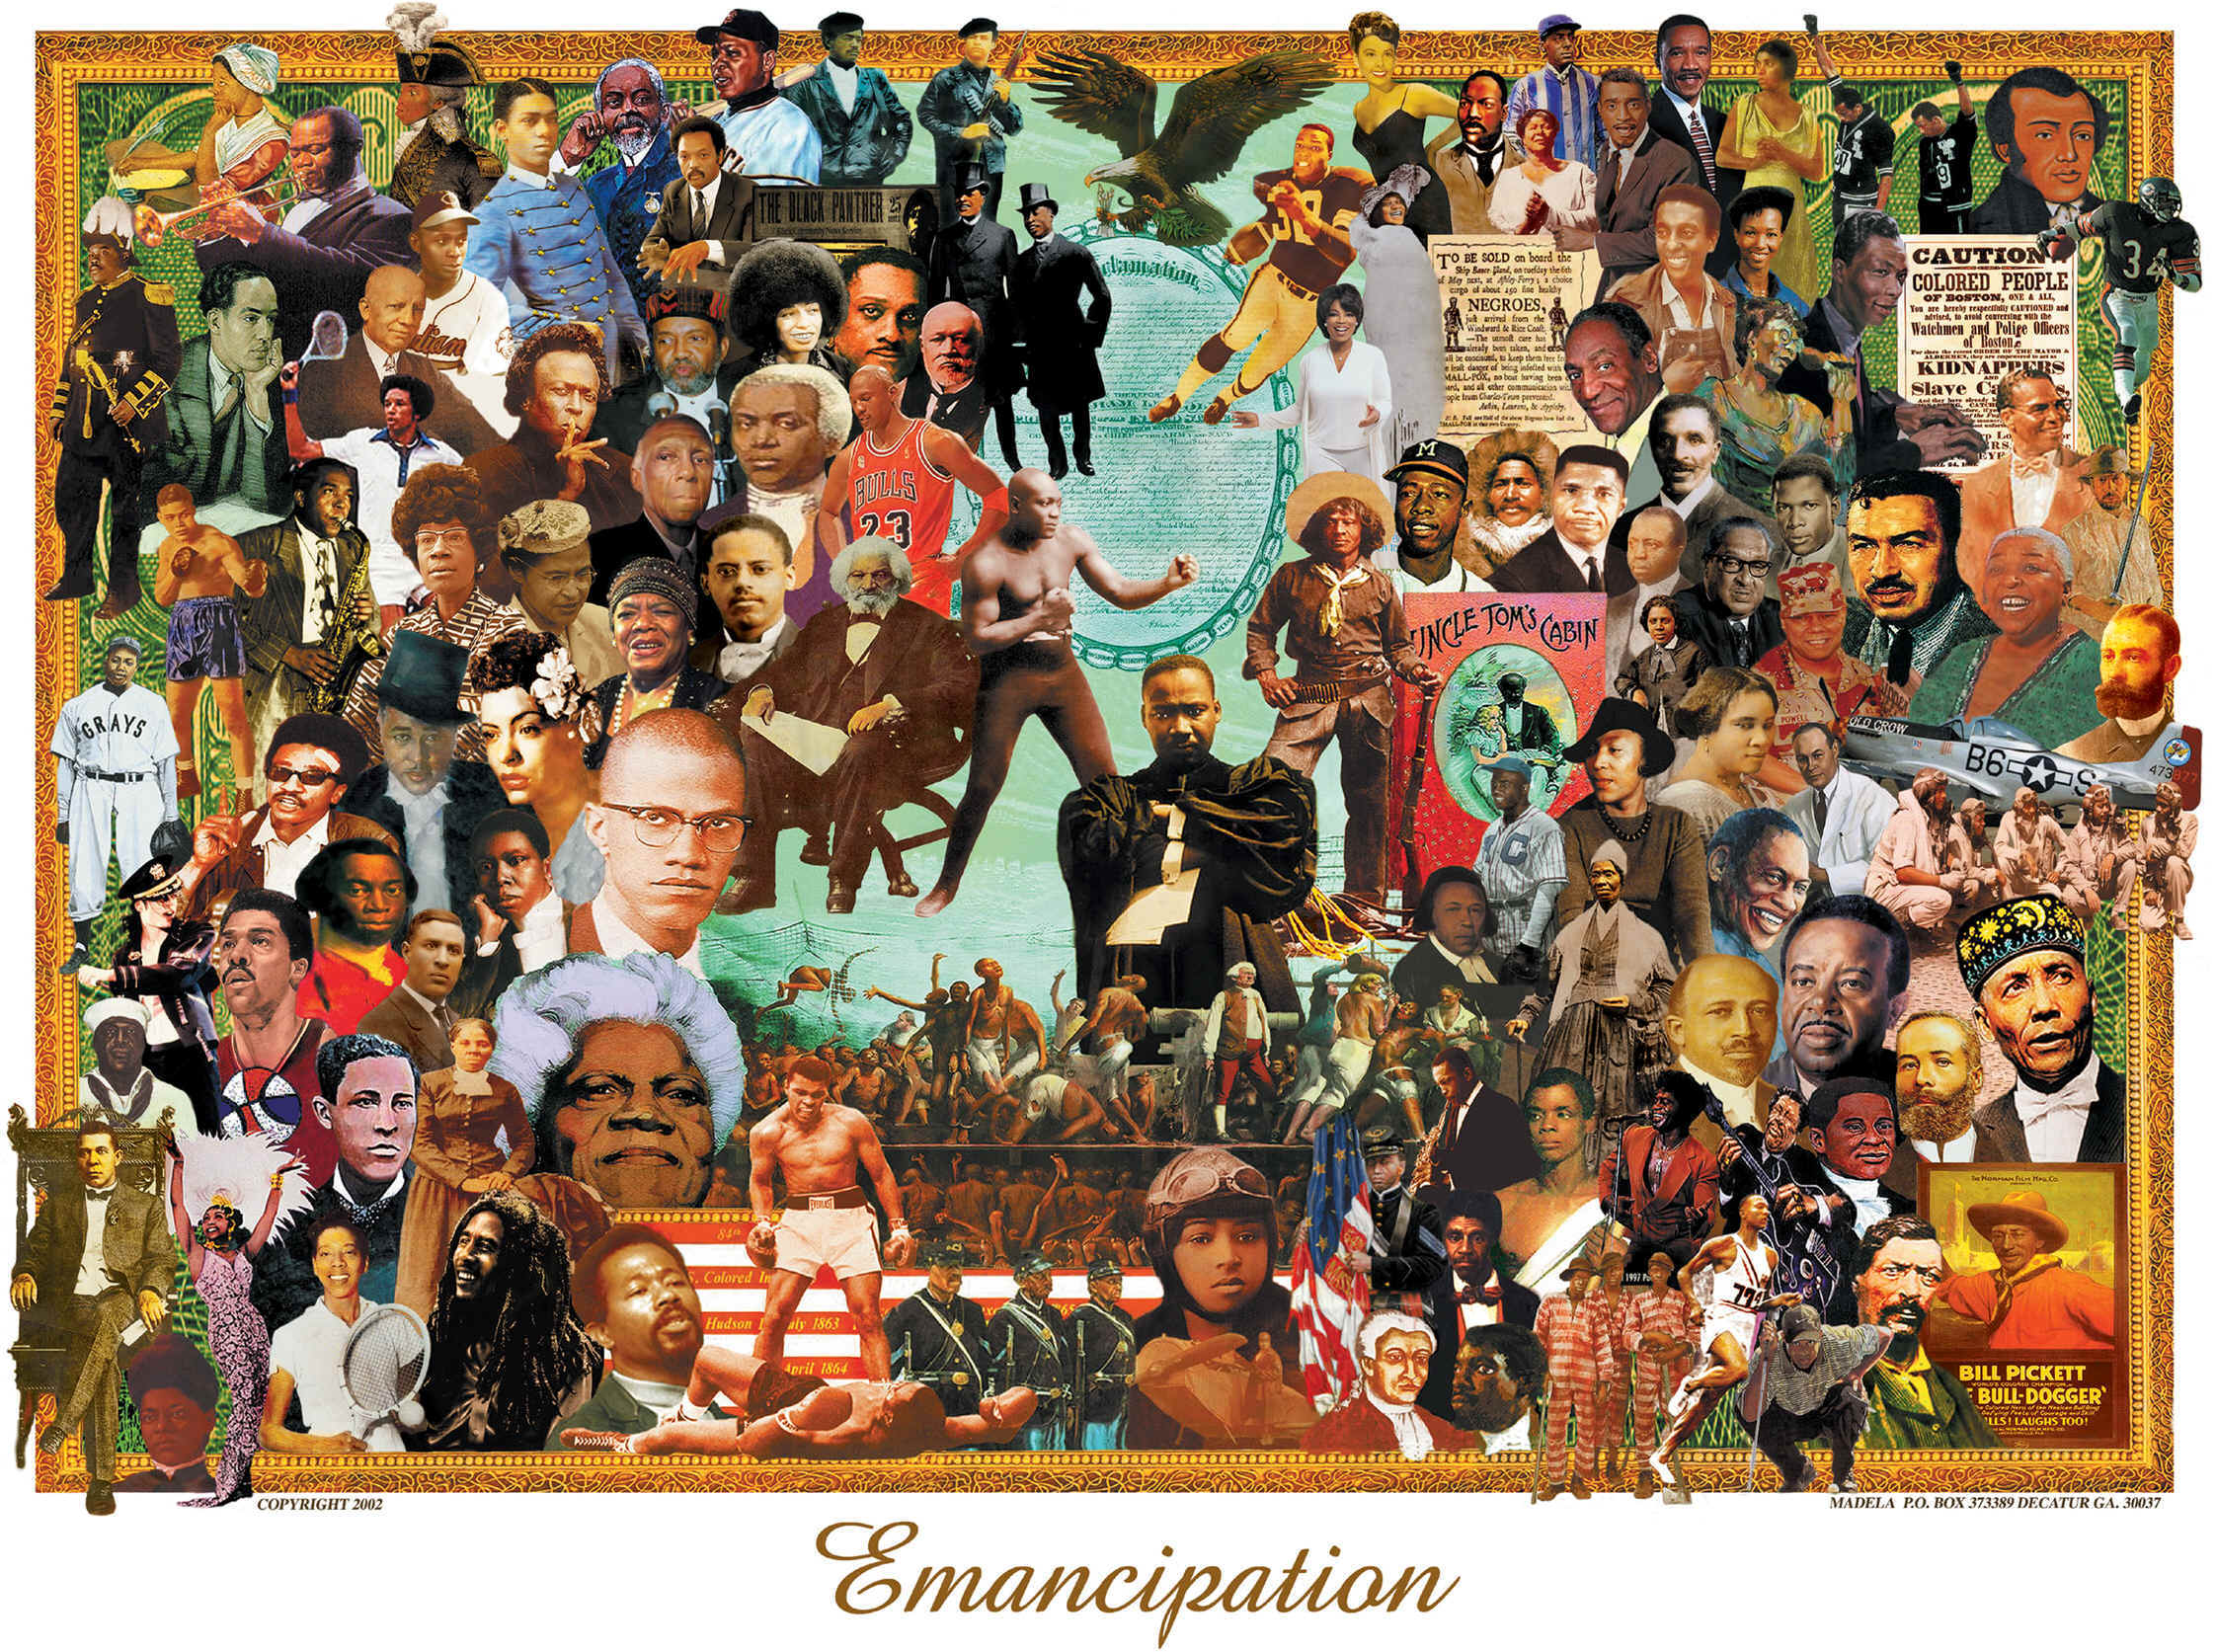 EMANCIPATION2000.COM